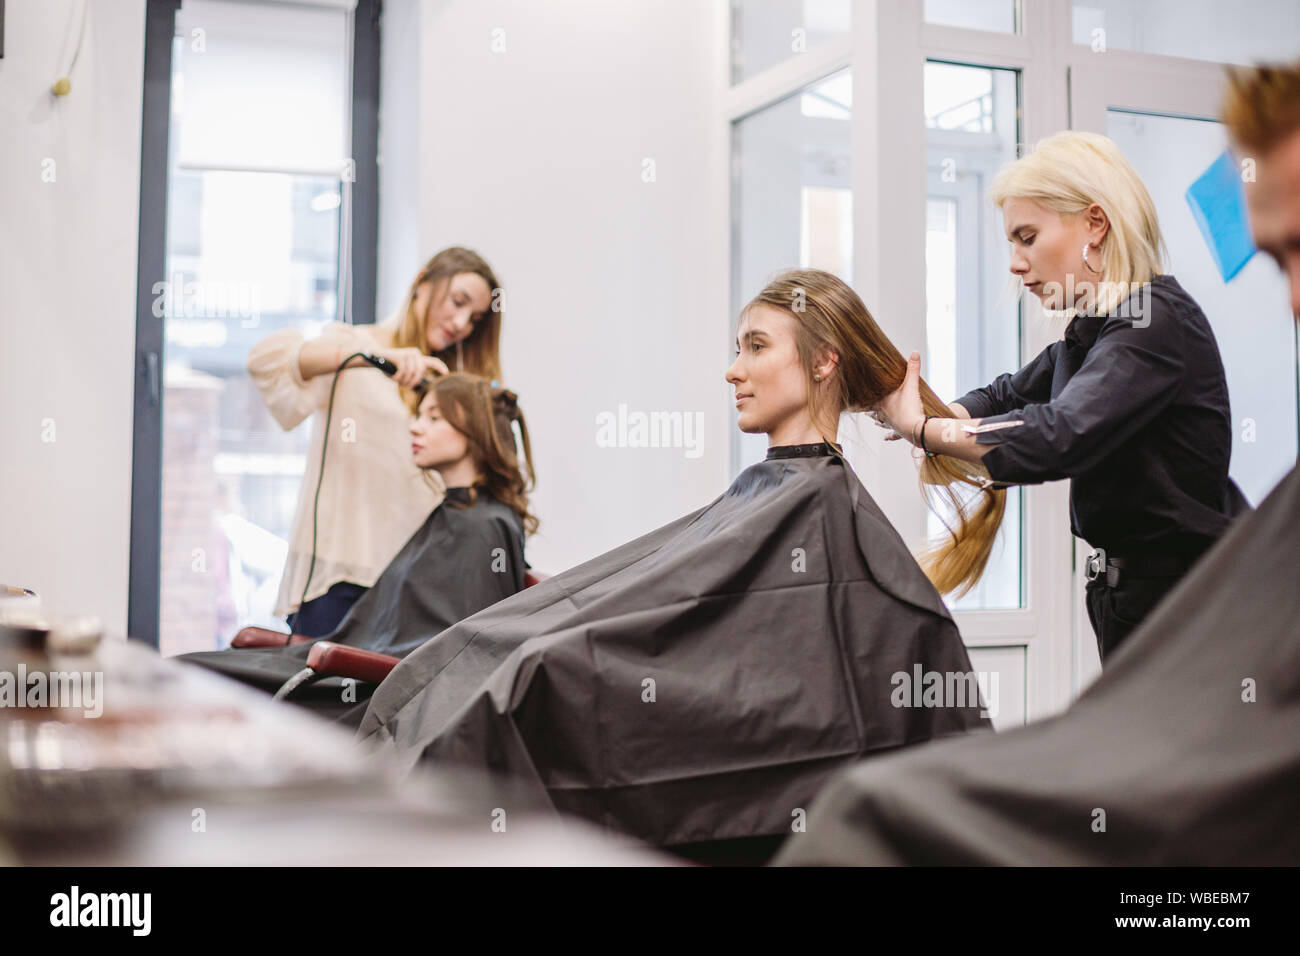 beautiful woman combing wet hair. stylist brushing woman hair in salon. Hairdresser Serving Customer. Professional Young Hairdresser Working With Comb Stock Photo